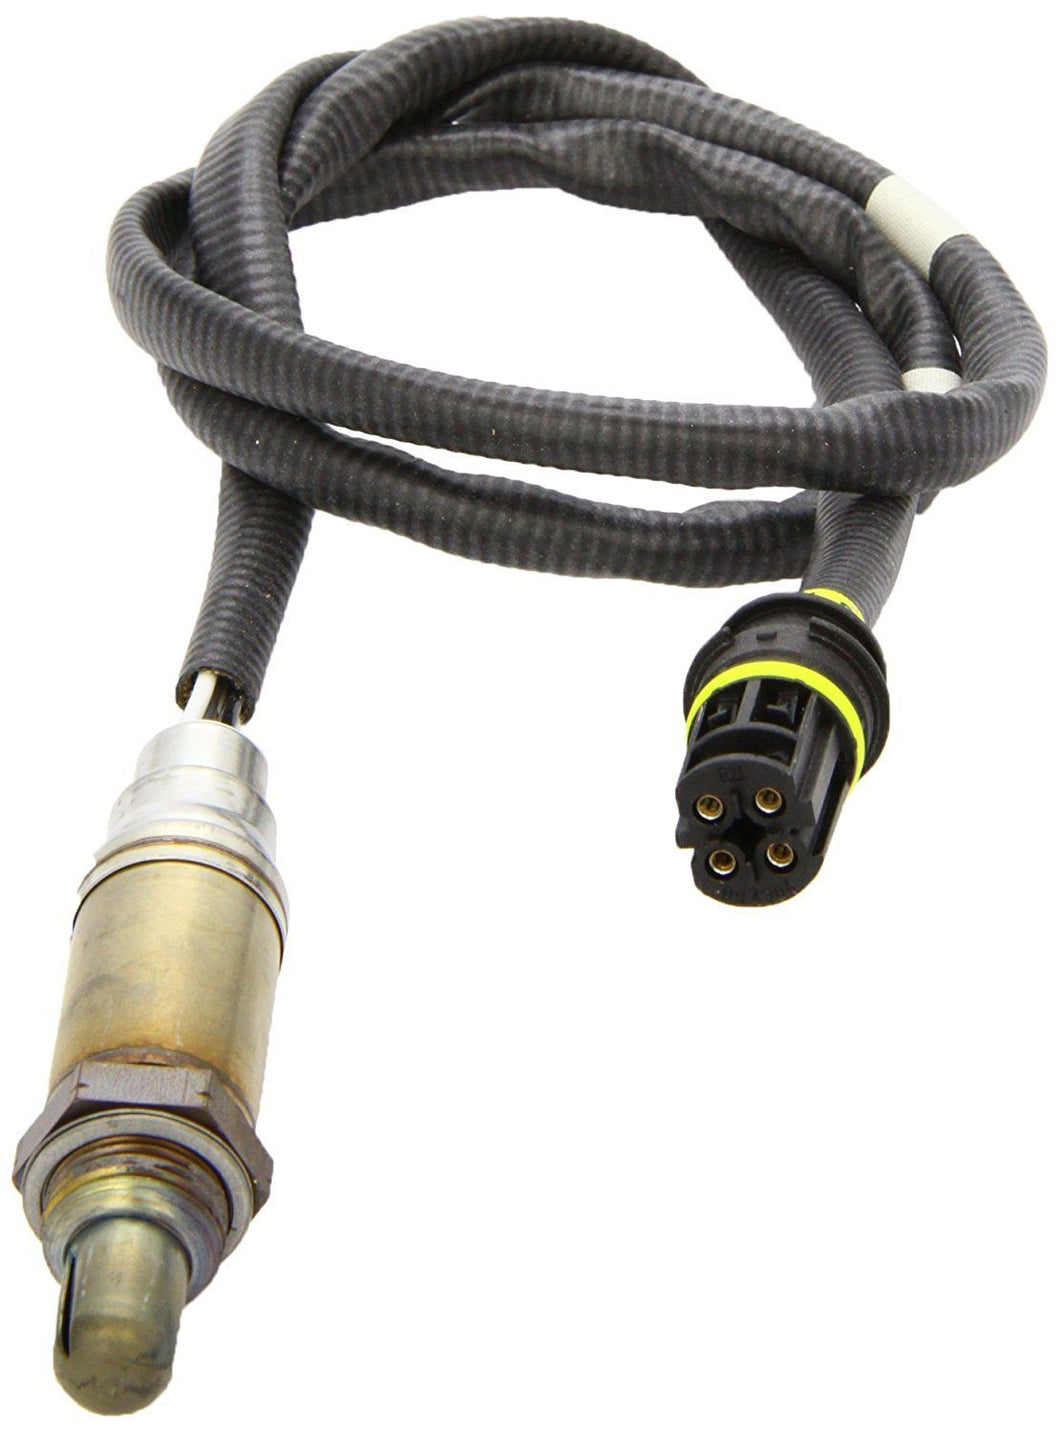 Oxygen Sensor Pre Cat Upstream for BMW M3 E46 O2 3.2 S54 CSL Cyl 1-3